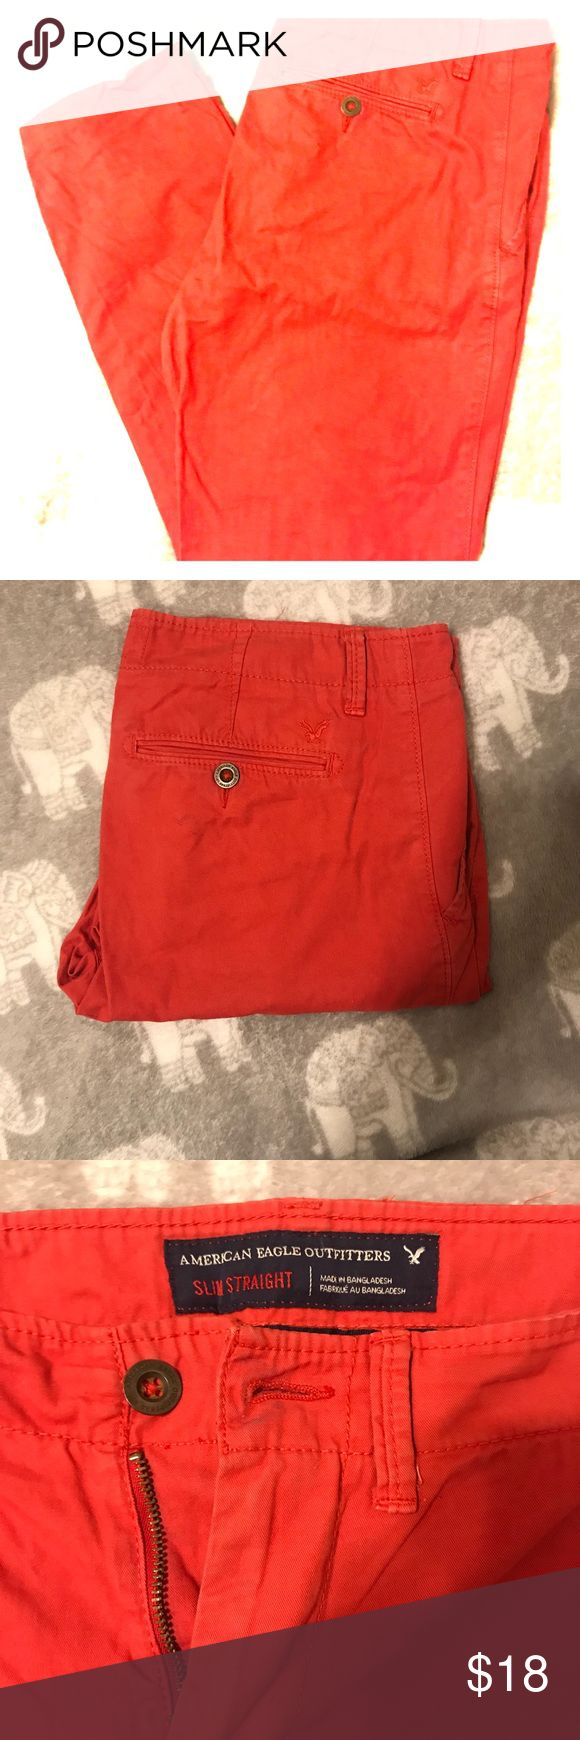 American Eagle red Pants for Men Barely used pants American eagle size is 32 waist and 30 length. American Eagle Outfitters Pants Chinos & Khakis